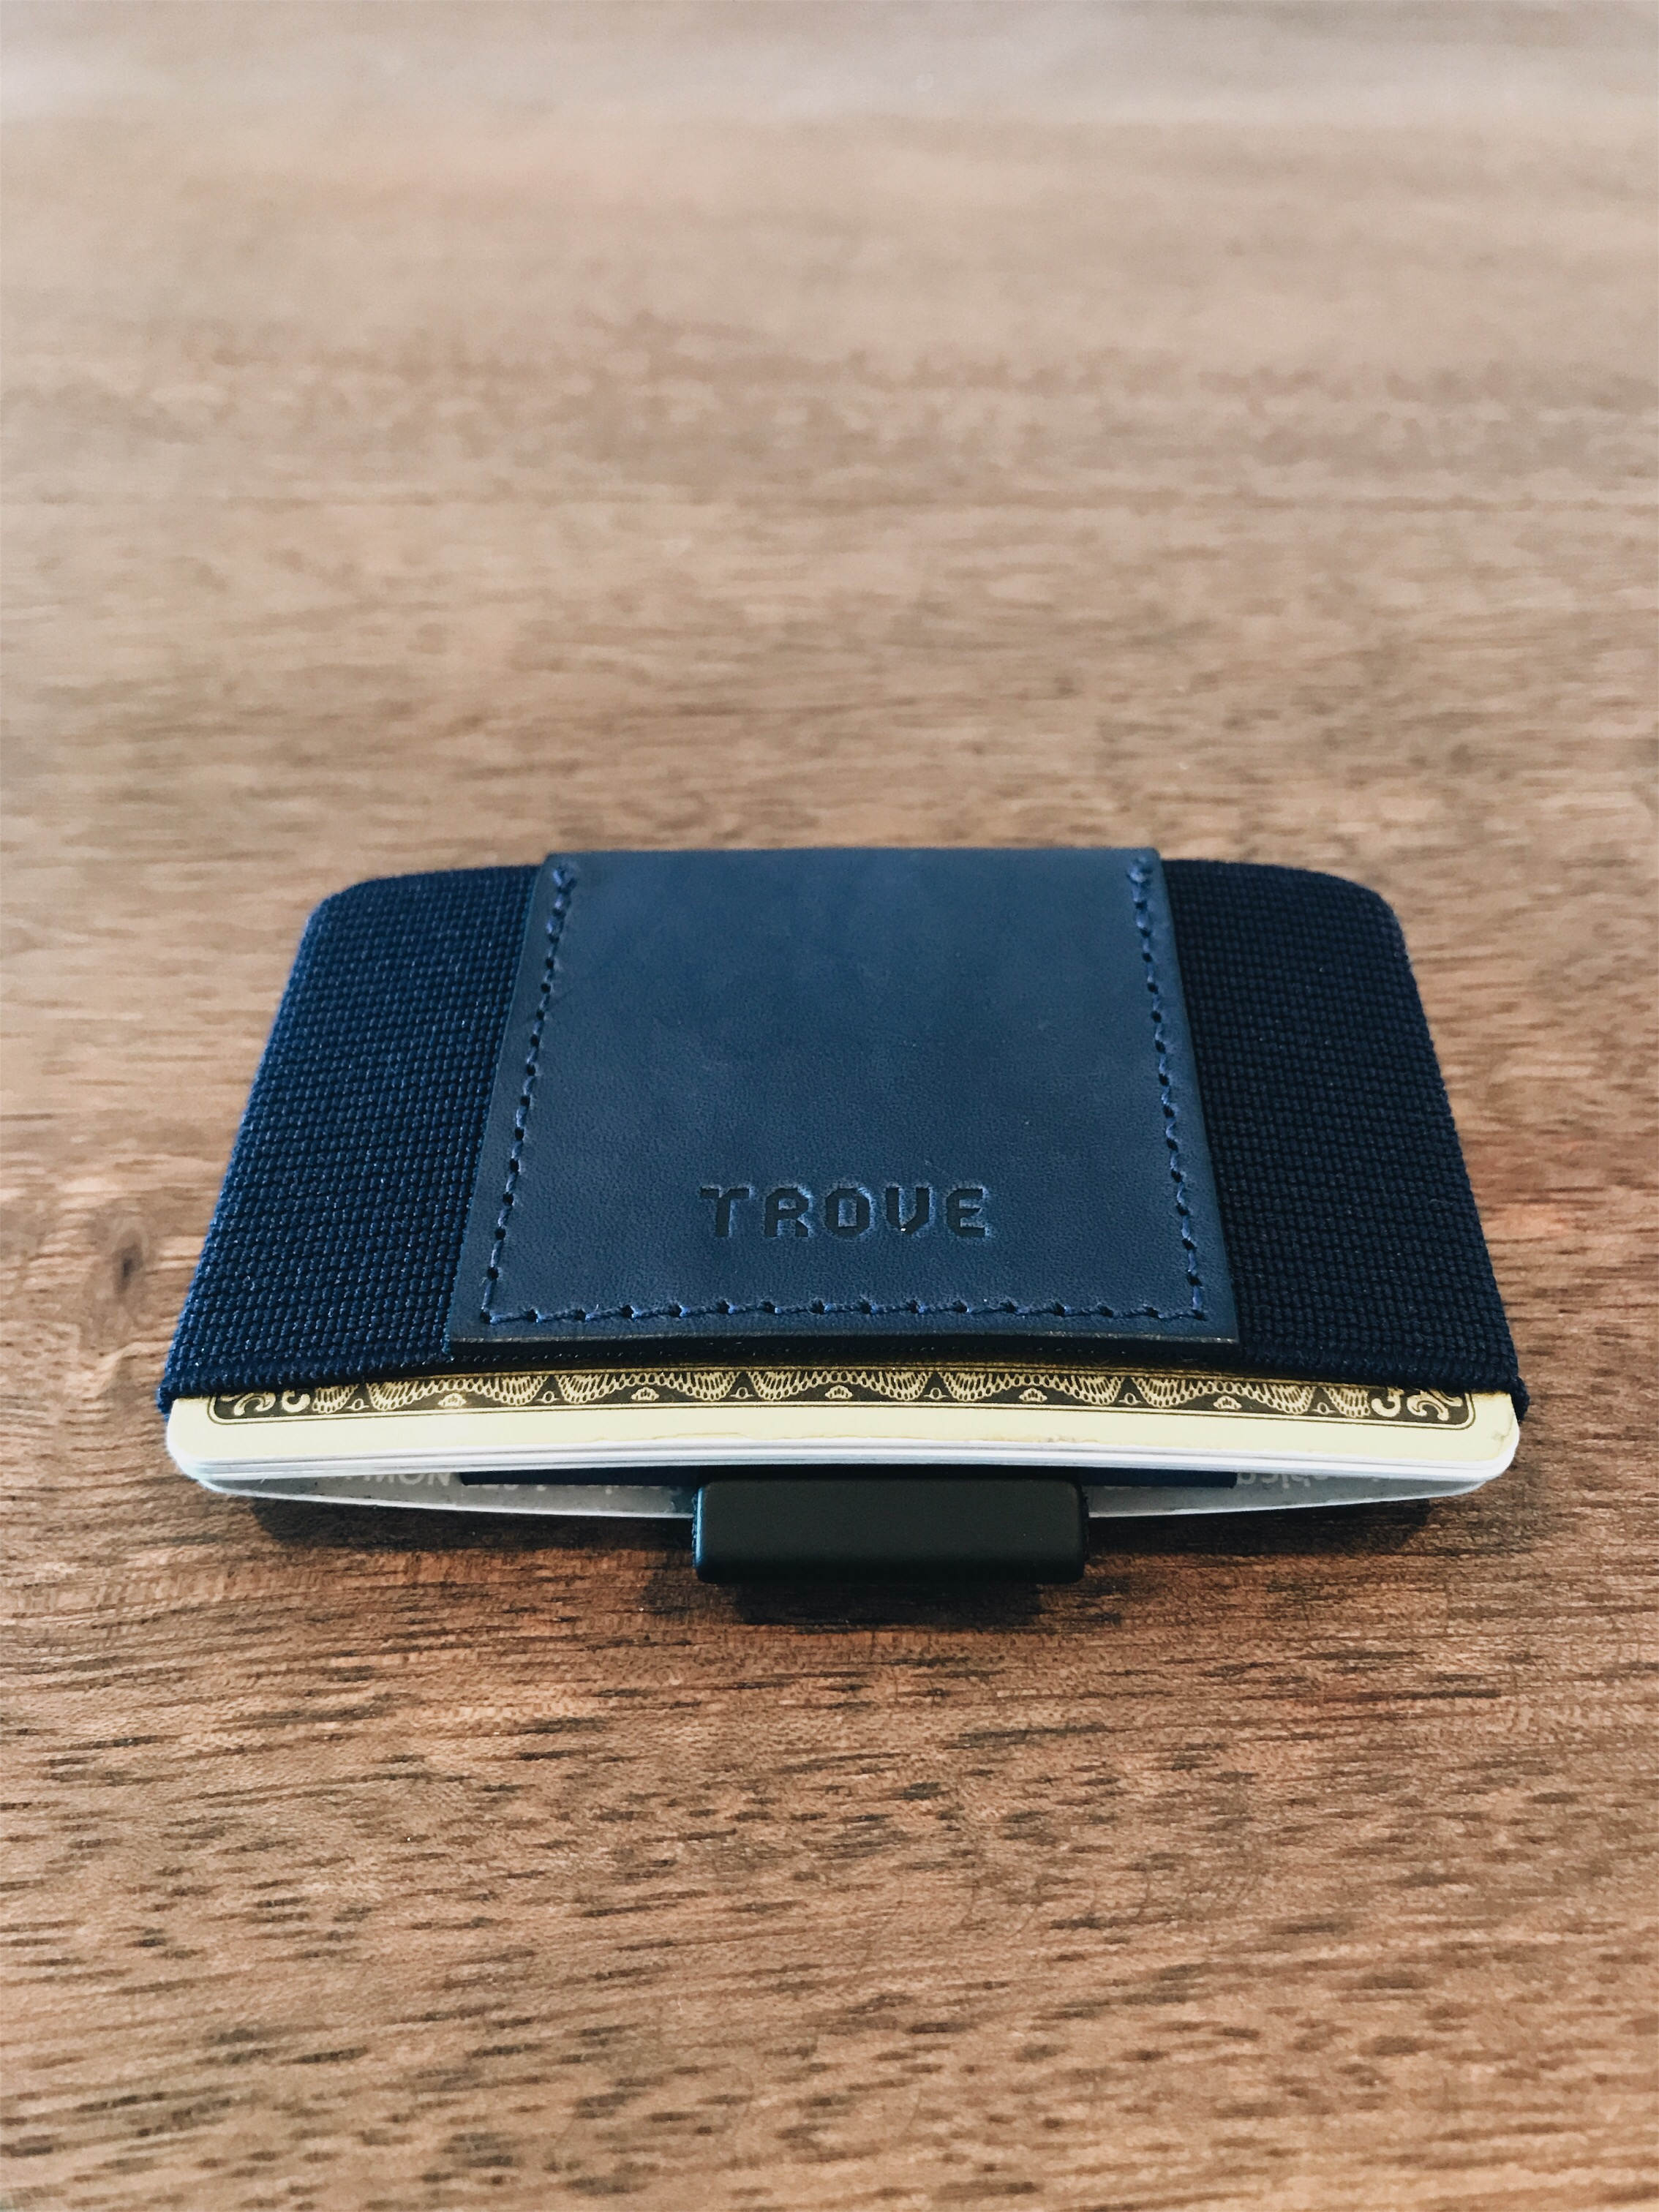 The Trove Swift Wallet